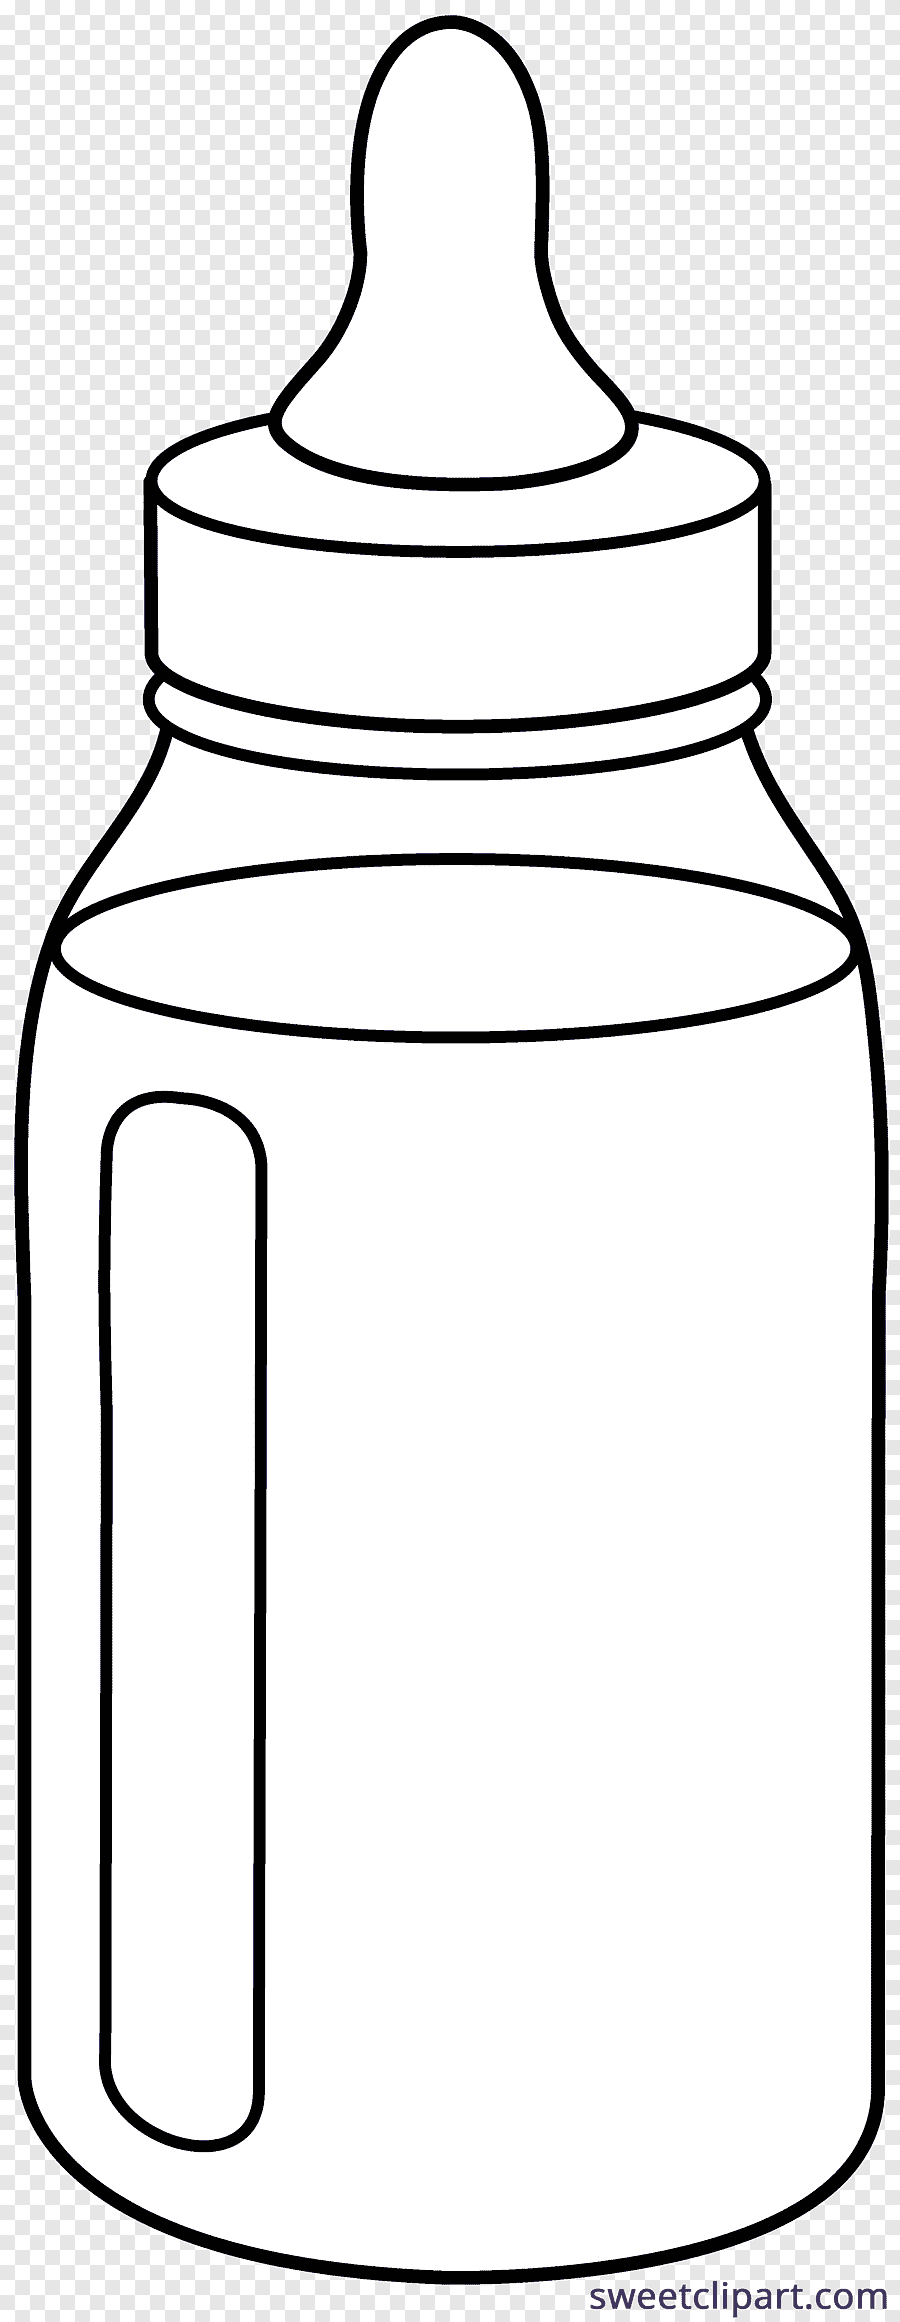 Mewarnai Gambar Botol : mewarnai, gambar, botol, Bottles, Images, PNGEgg